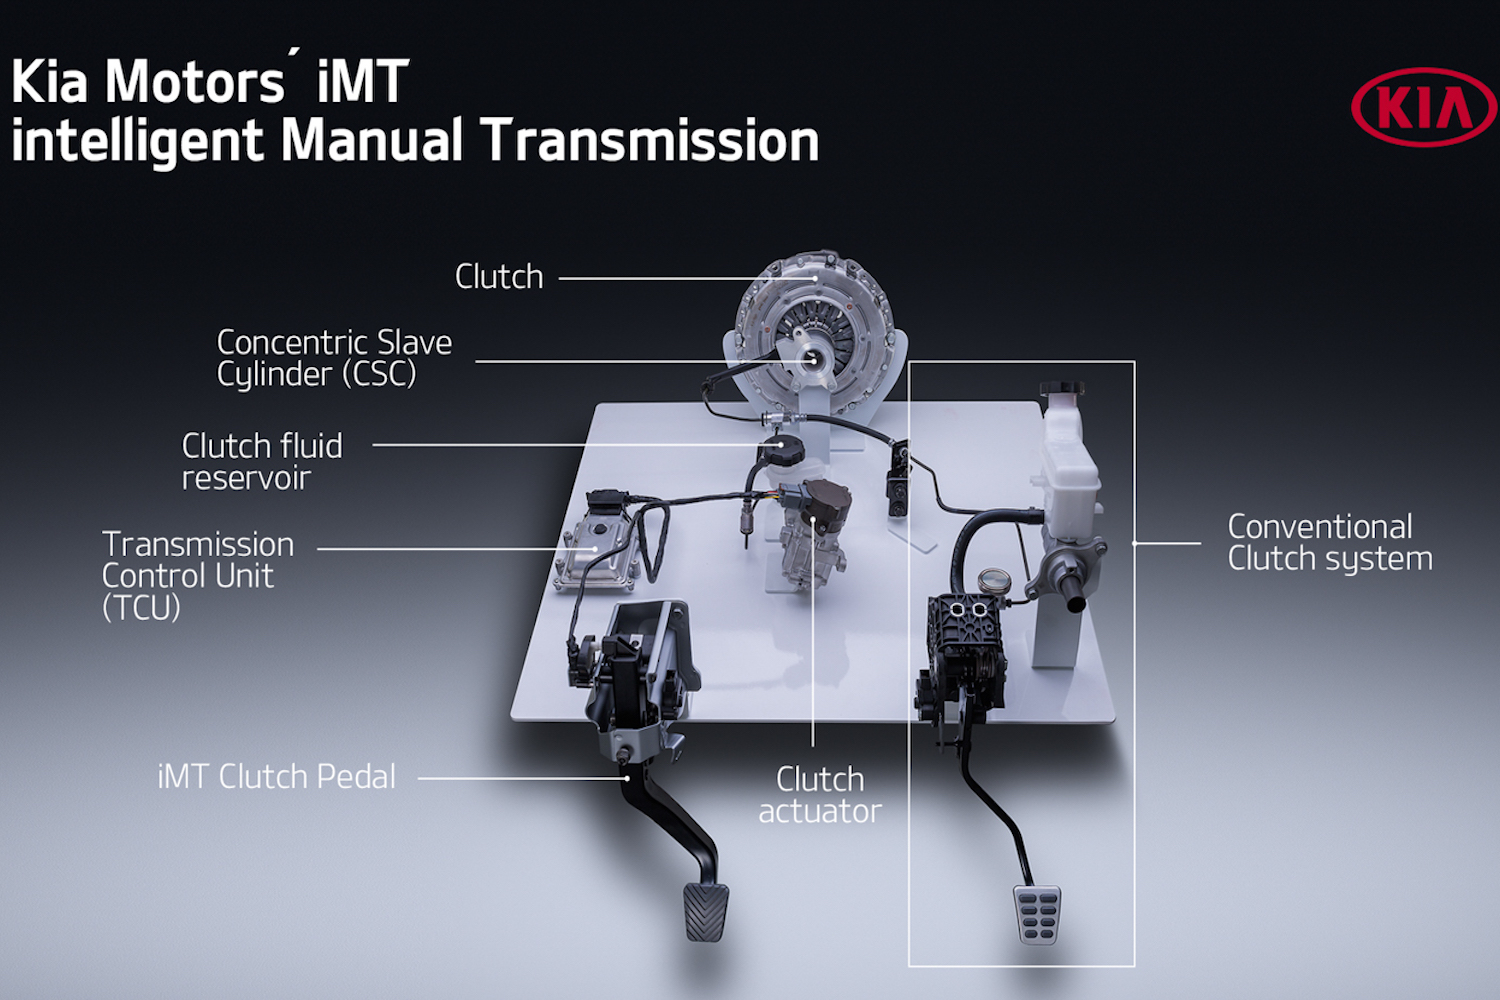 Kia intelligent Manual Transmission